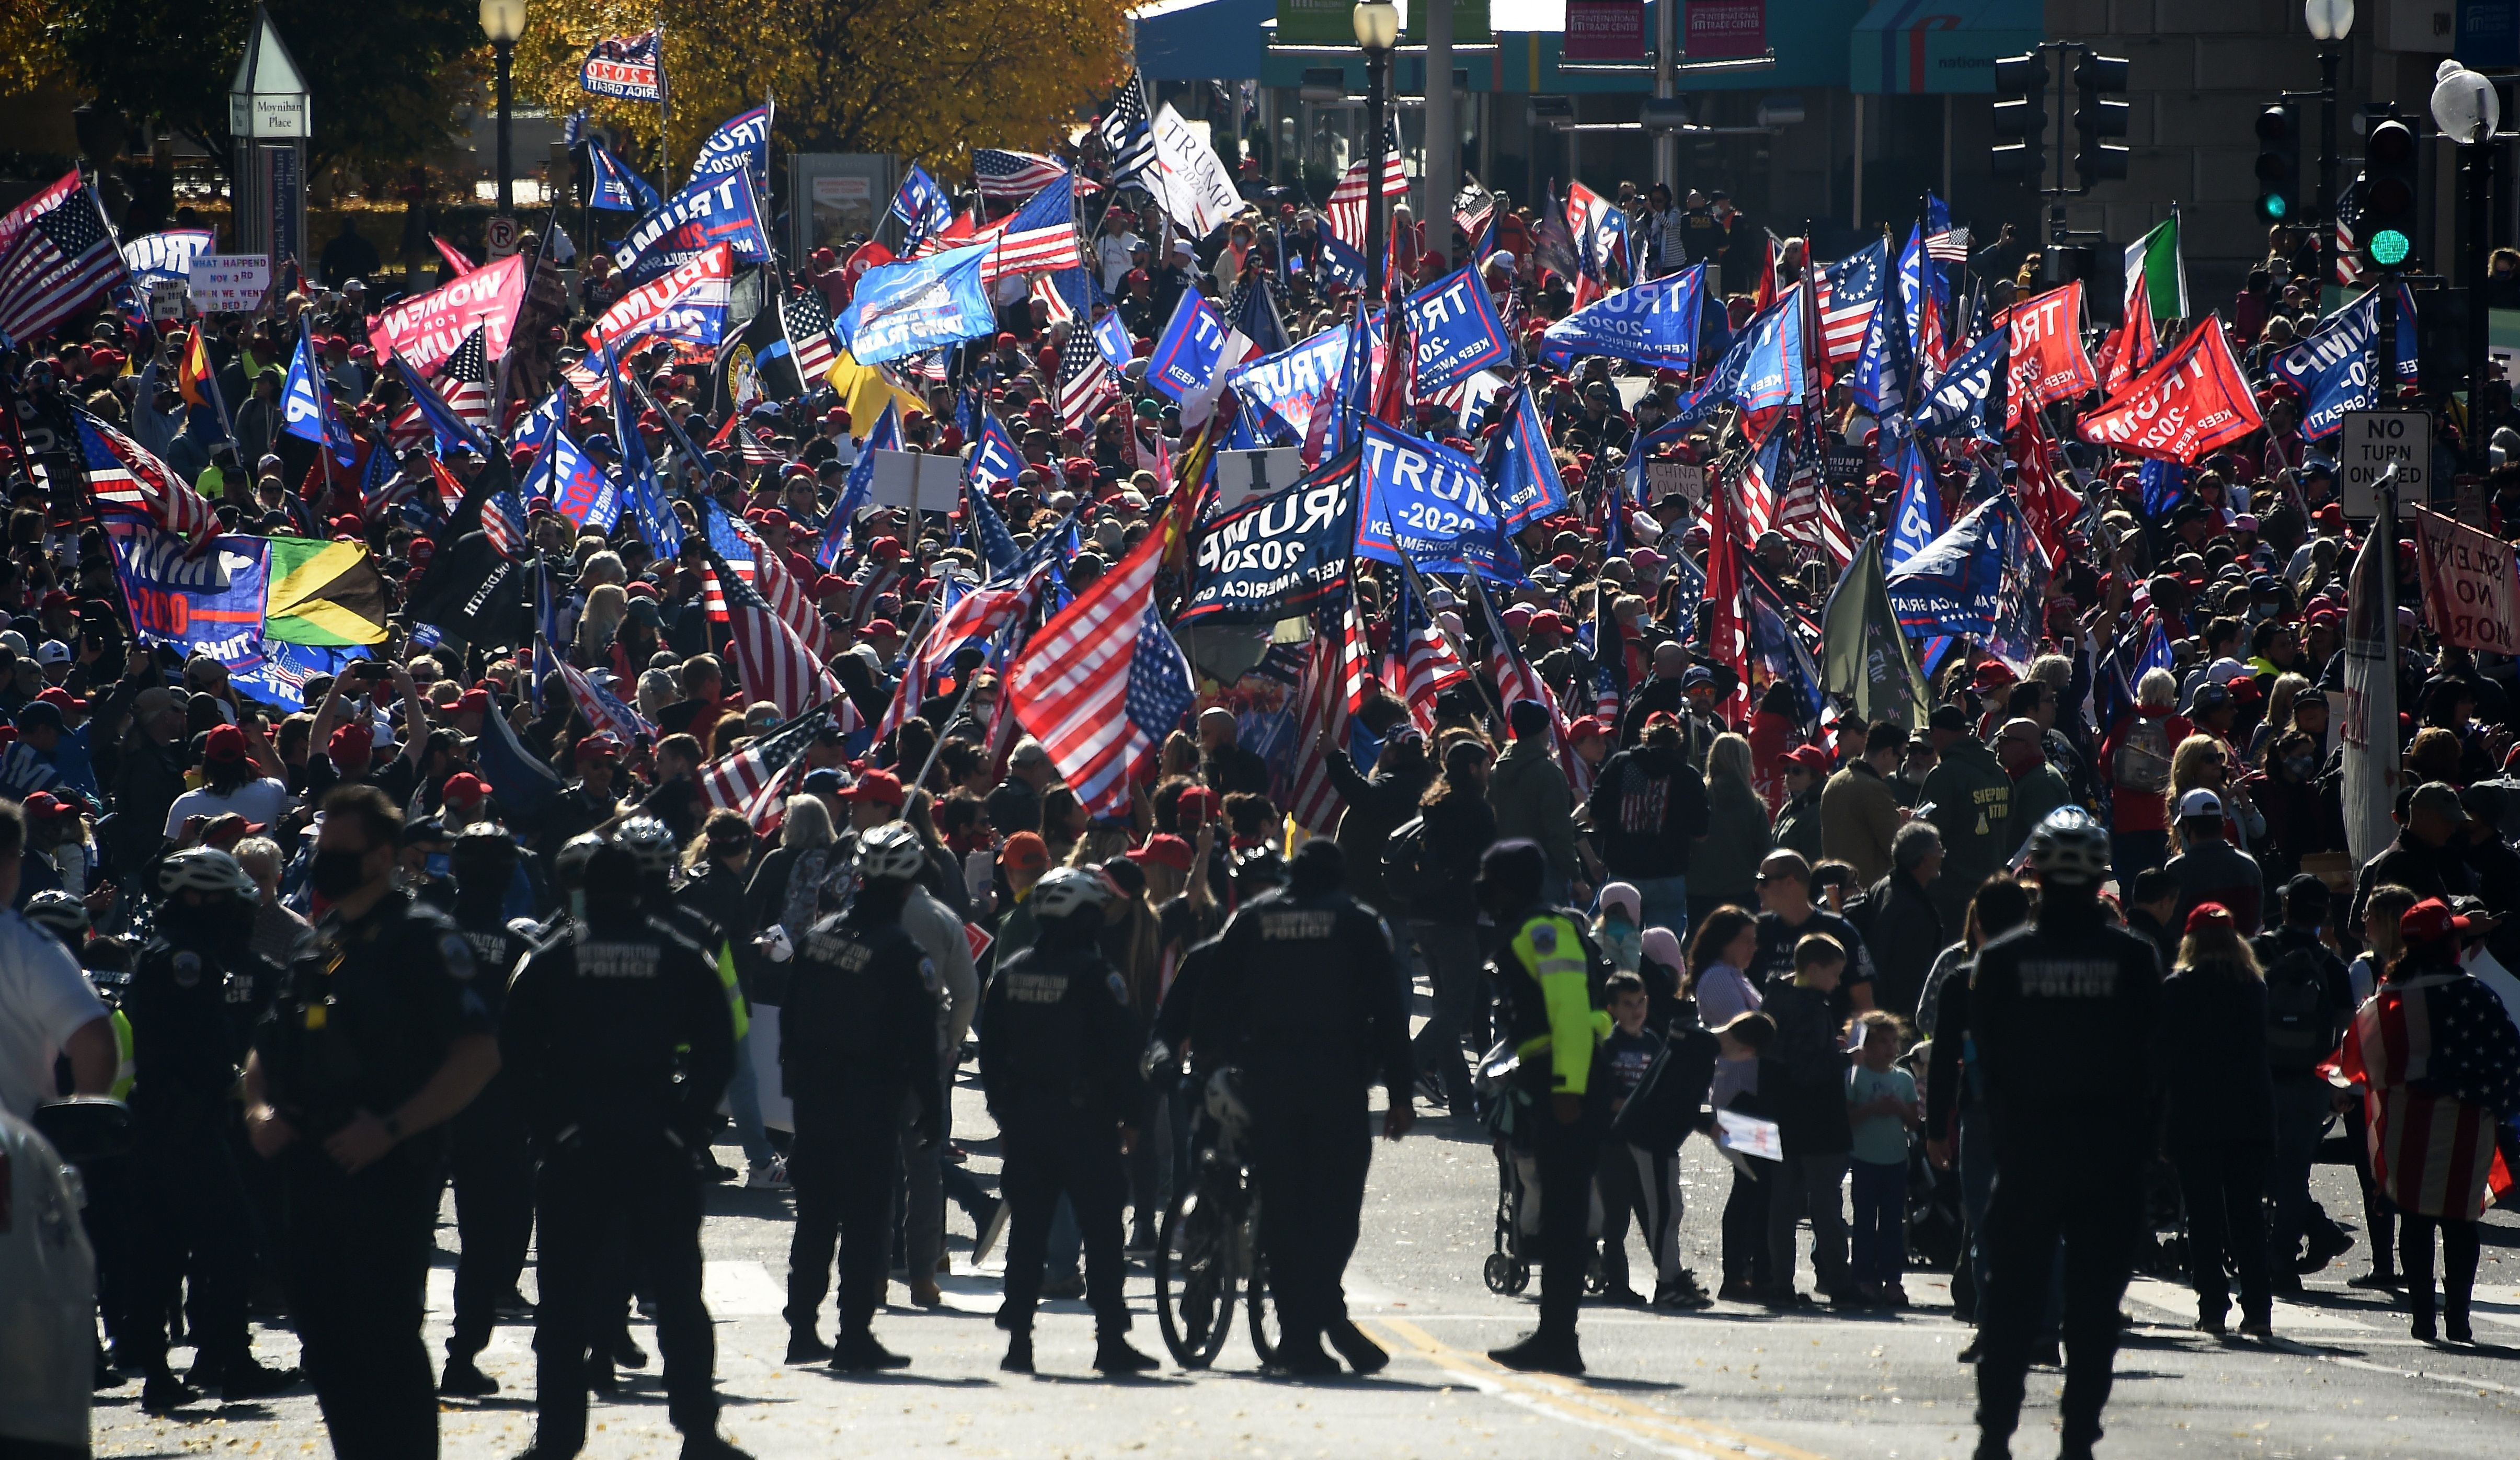 Trump supporters gathered in Washington, DC, on Nov. 14.